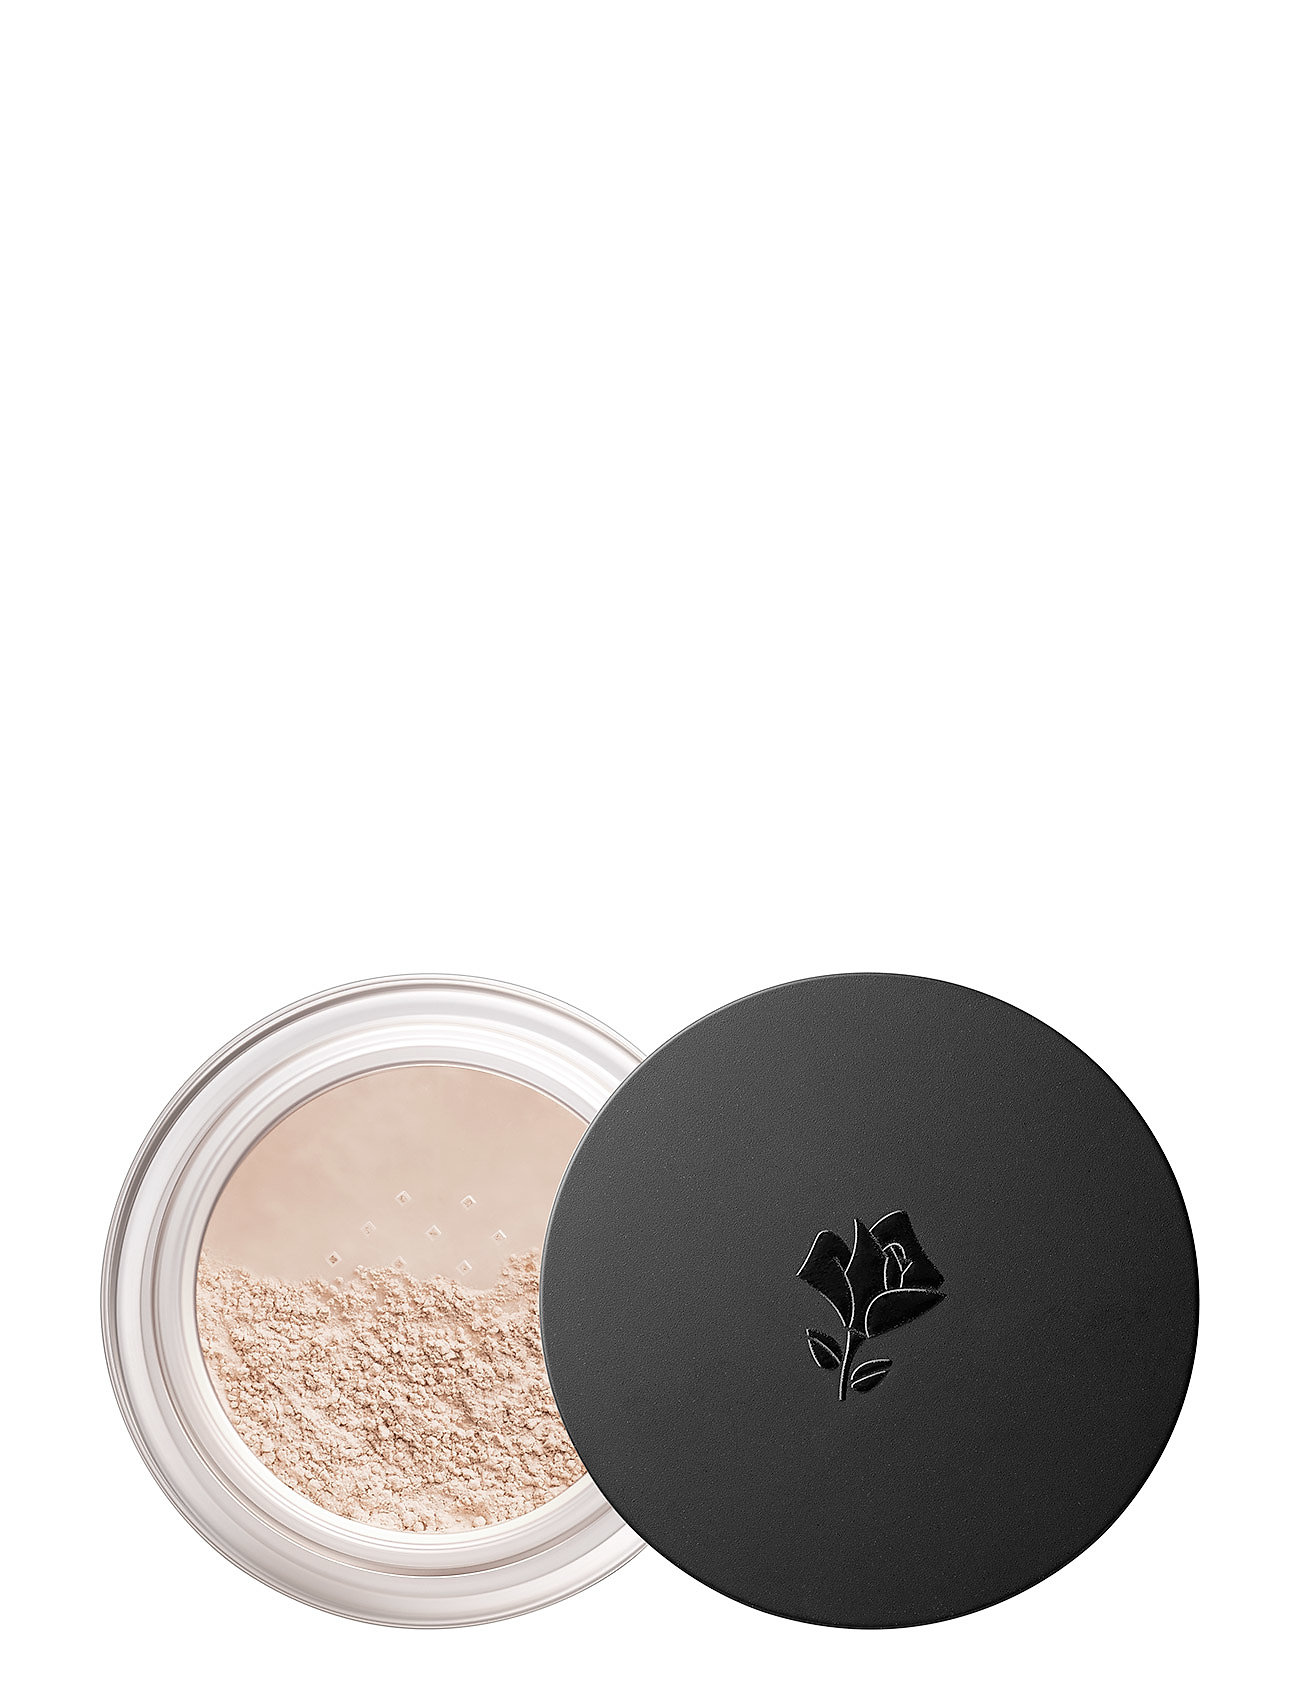 Lancôme Loose Setting Powder Translucent